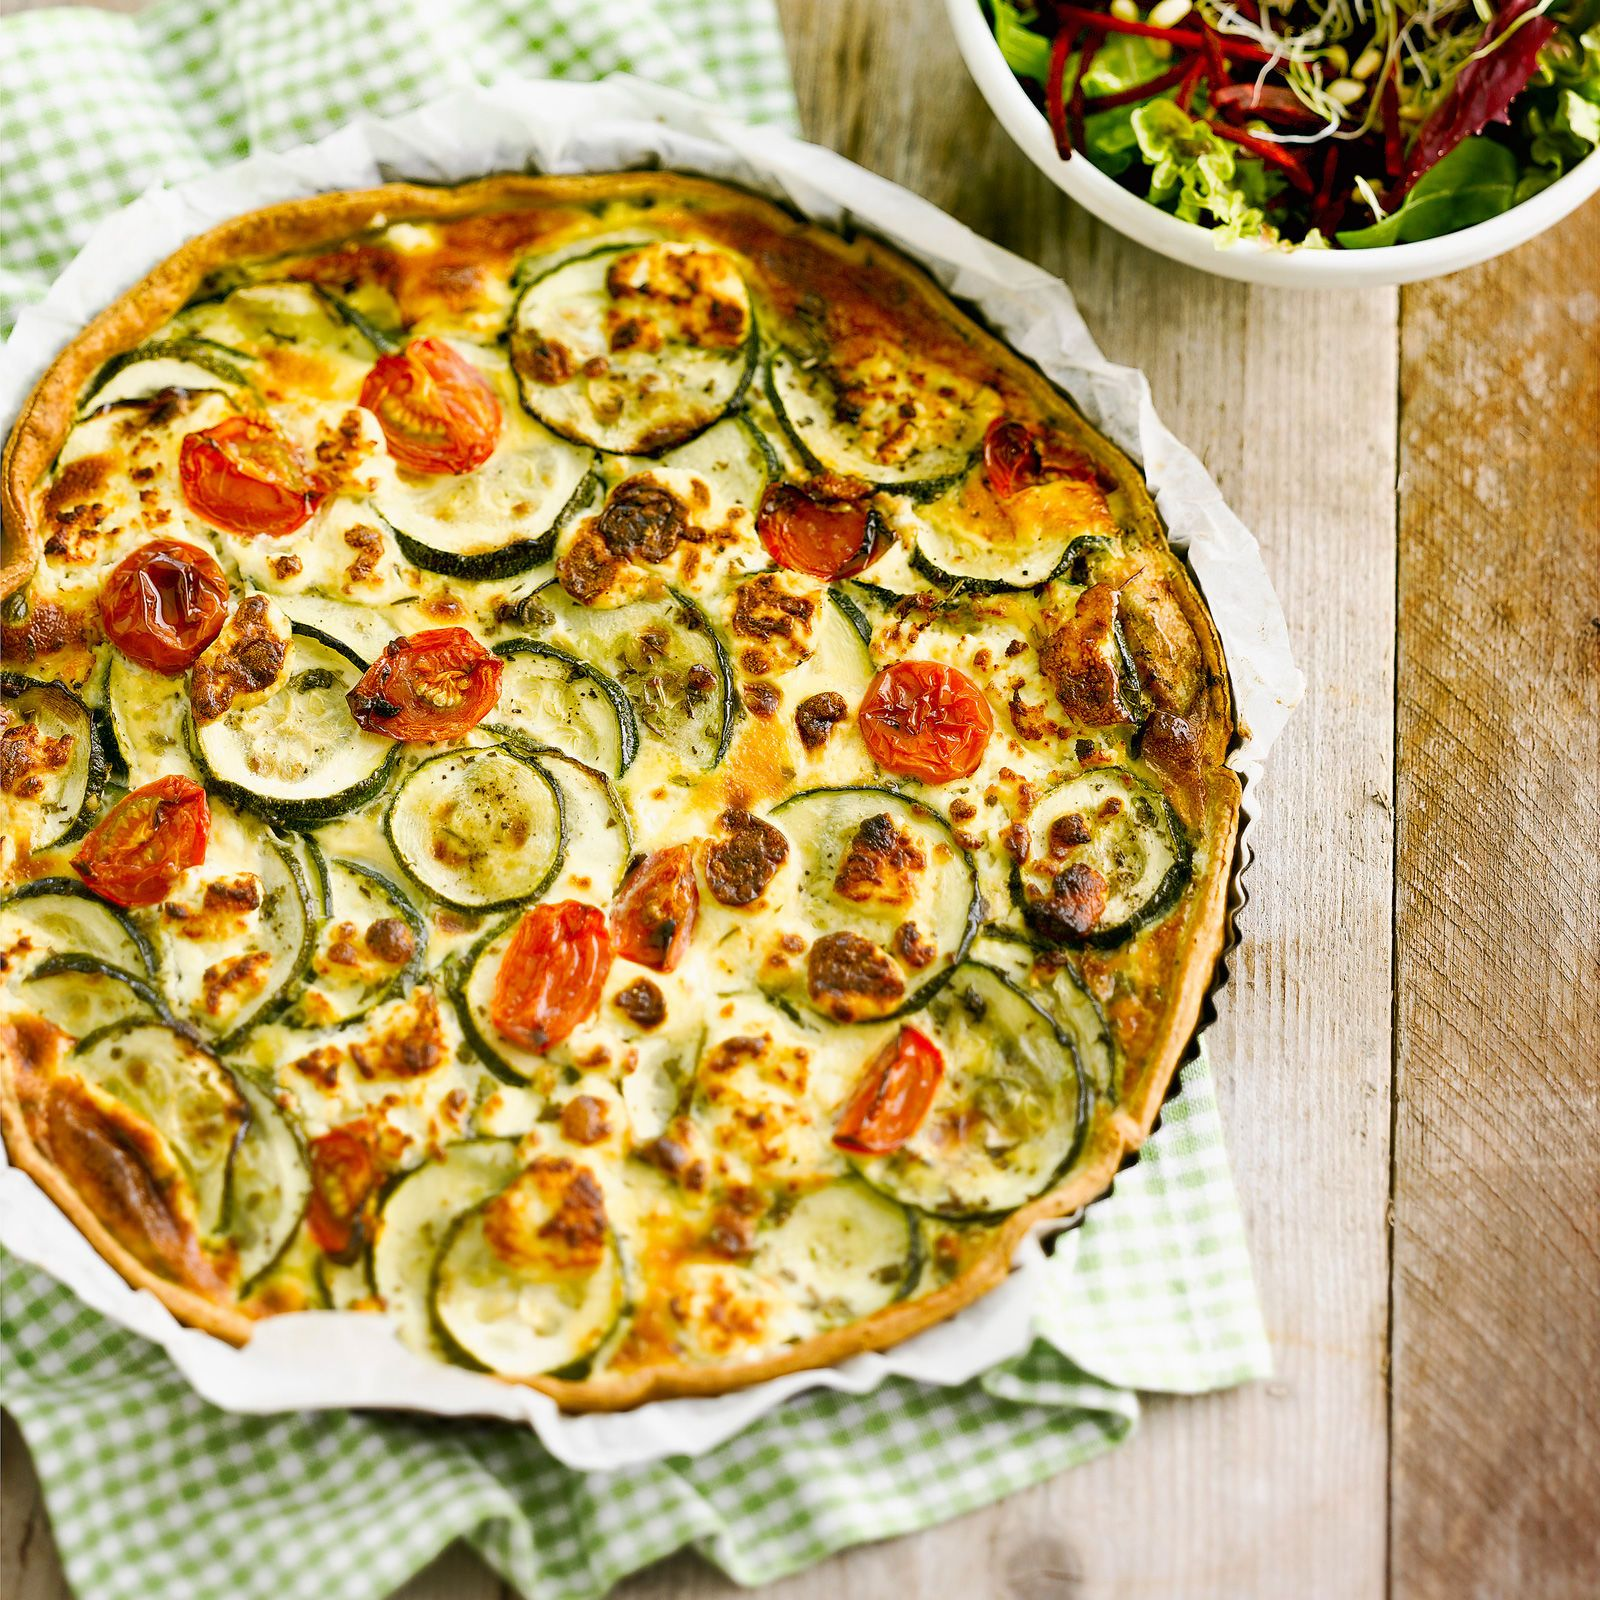 137d419736db8 Quiche courgette chèvre